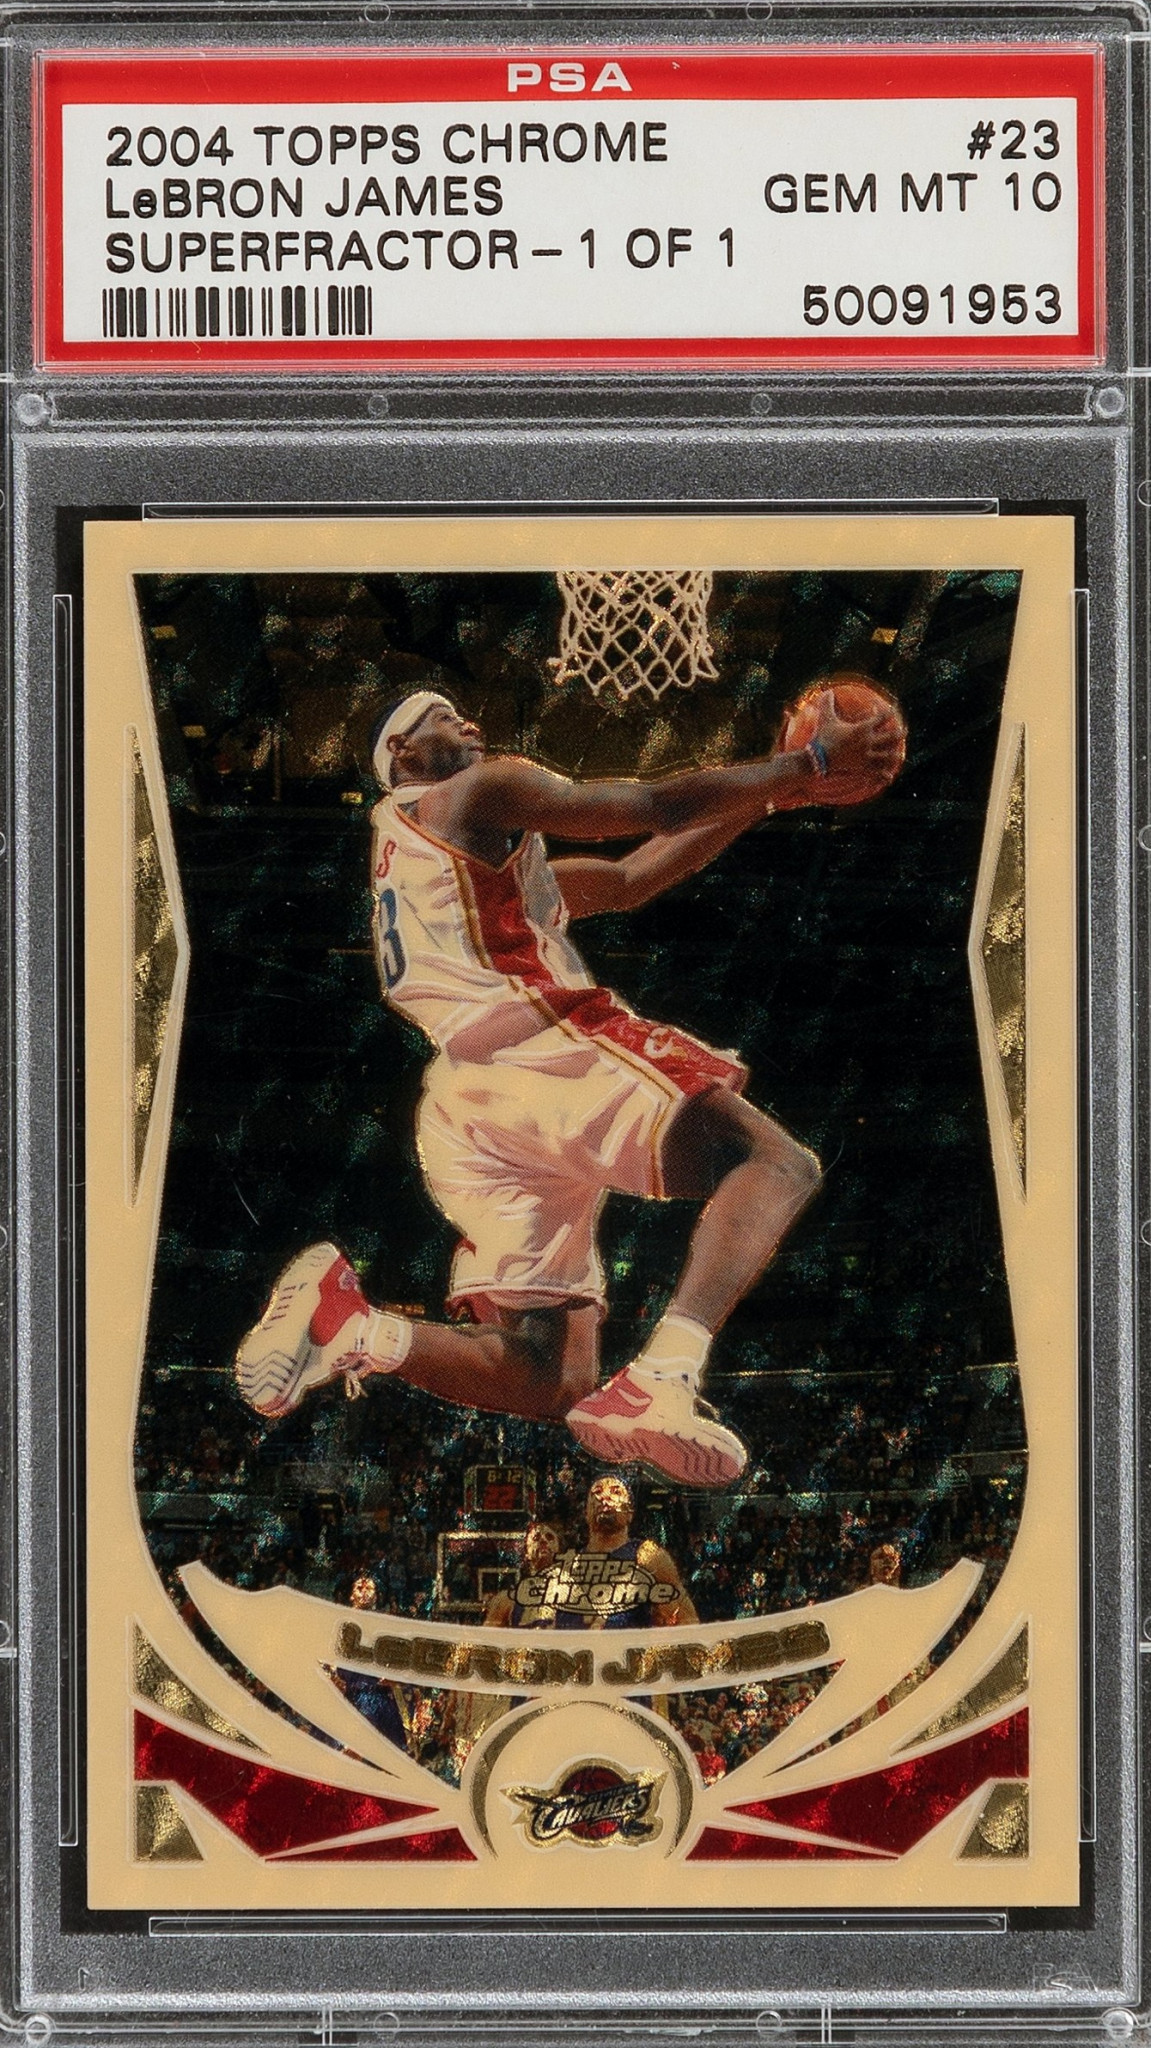 A Topps Chrome trading card from 2004 featuring LeBron James has sold for $720,000 - more than half-a-million dollars above the pre-sale estimate ©Heritage Auctions